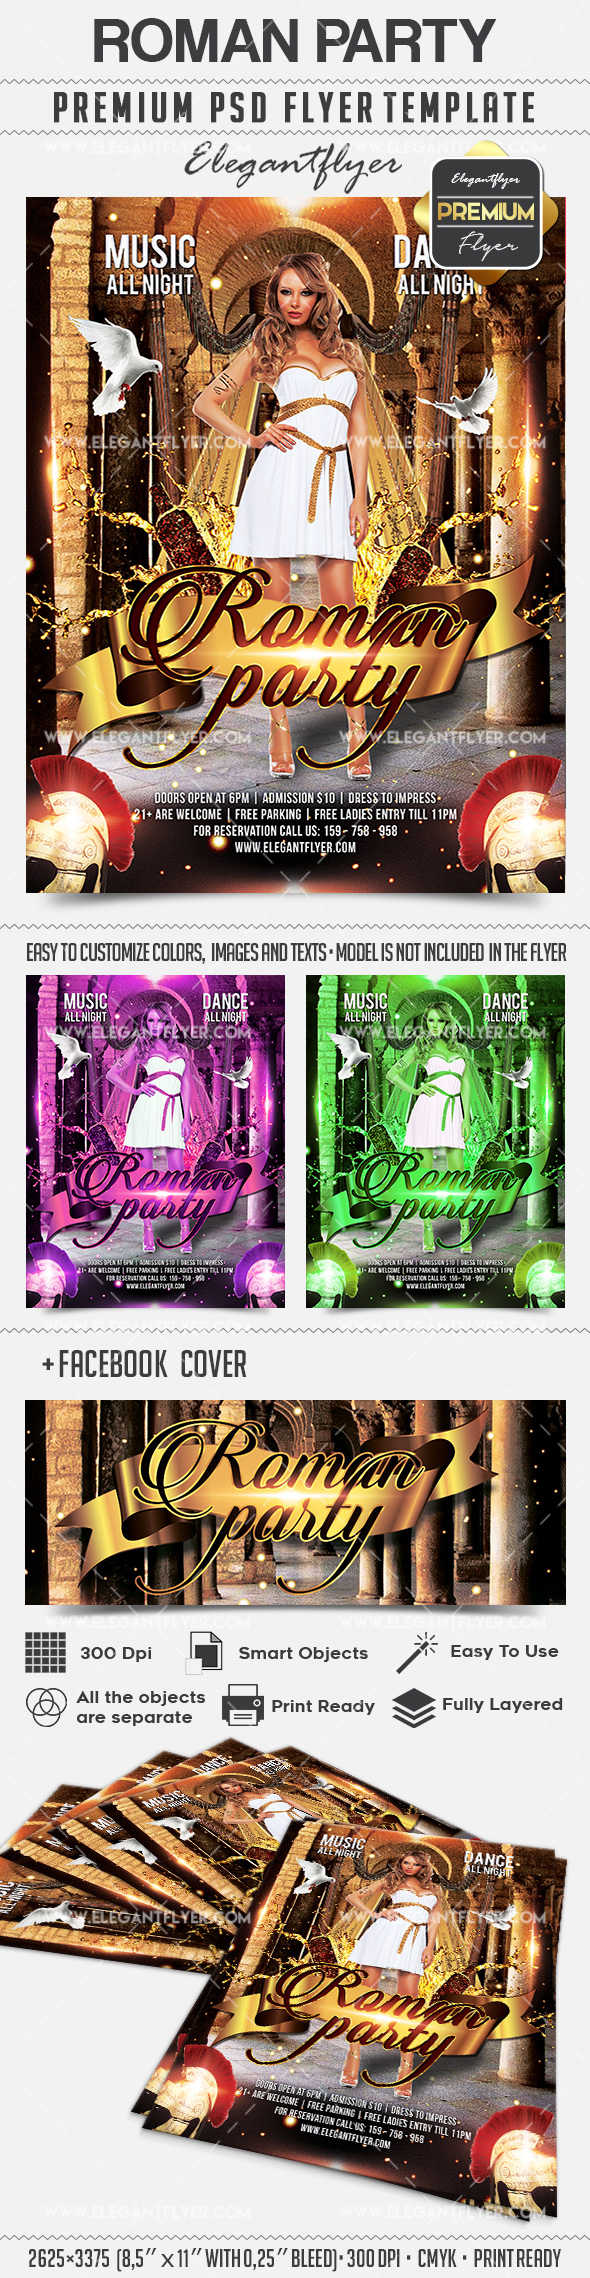 Roman Party – Flyer PSD Template + Facebook Cover